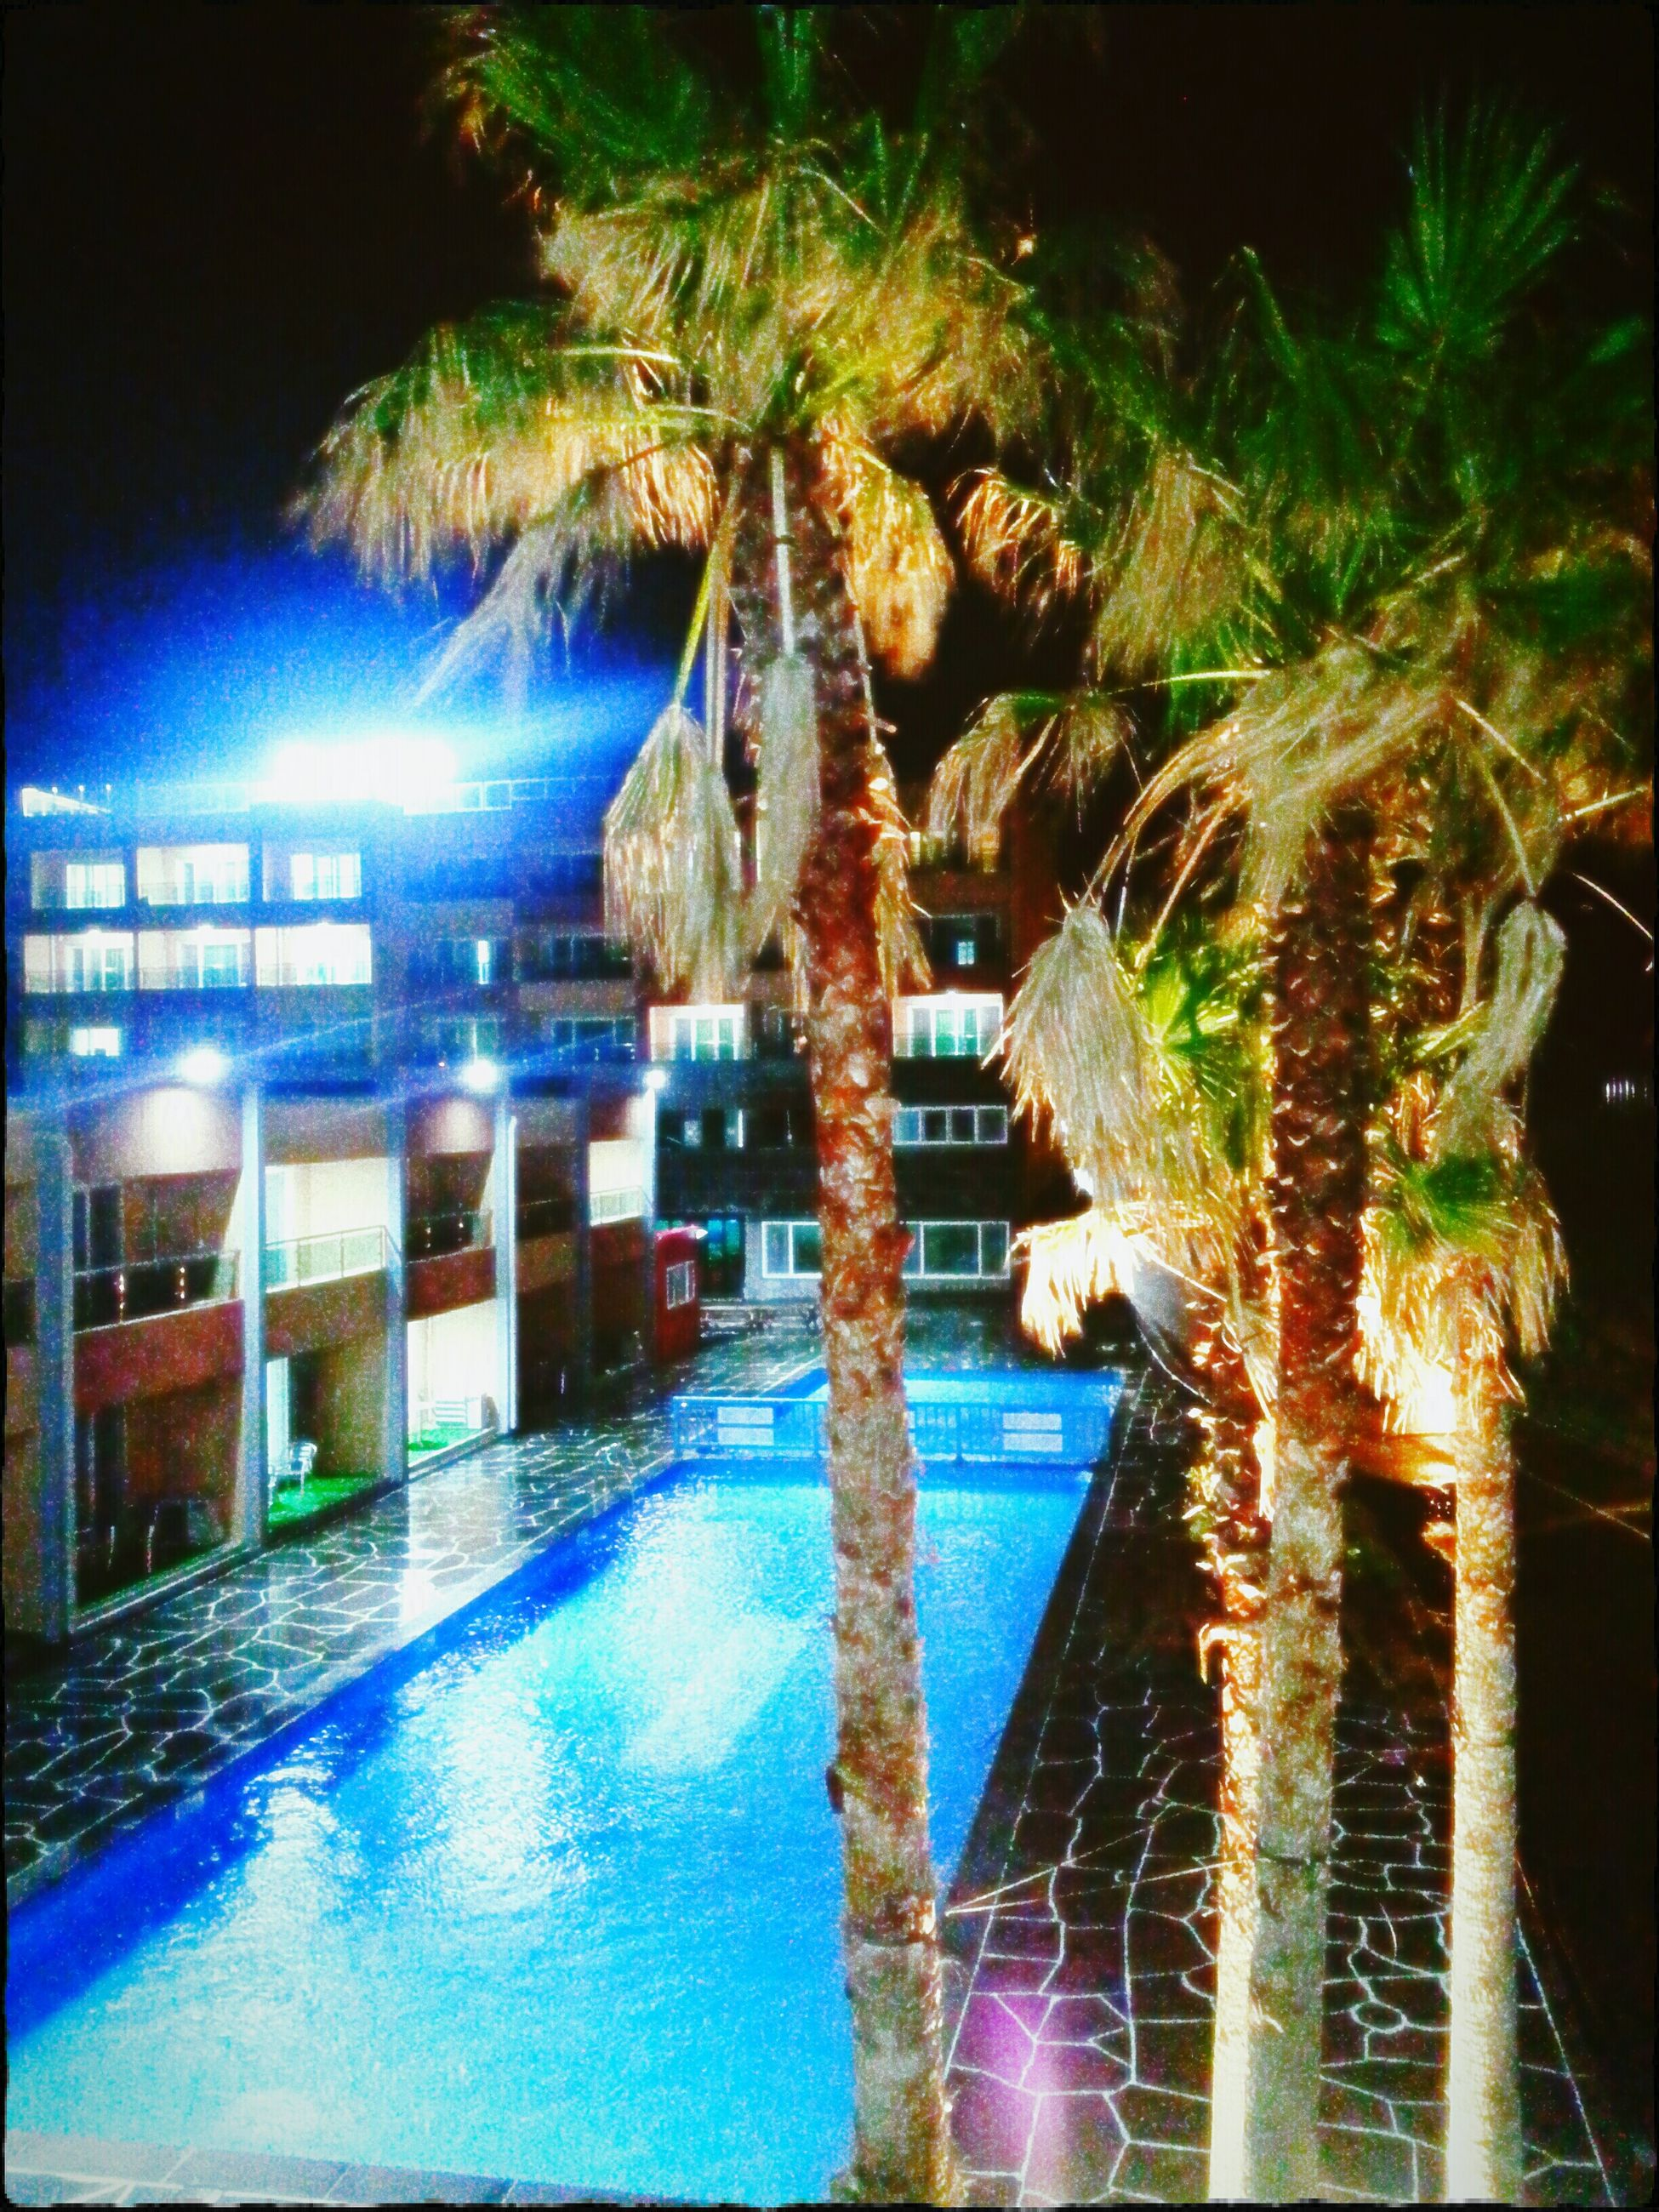 architecture, built structure, building exterior, water, illuminated, reflection, night, city, tree, swimming pool, blue, building, residential building, canal, palm tree, no people, sky, residential structure, outdoors, river